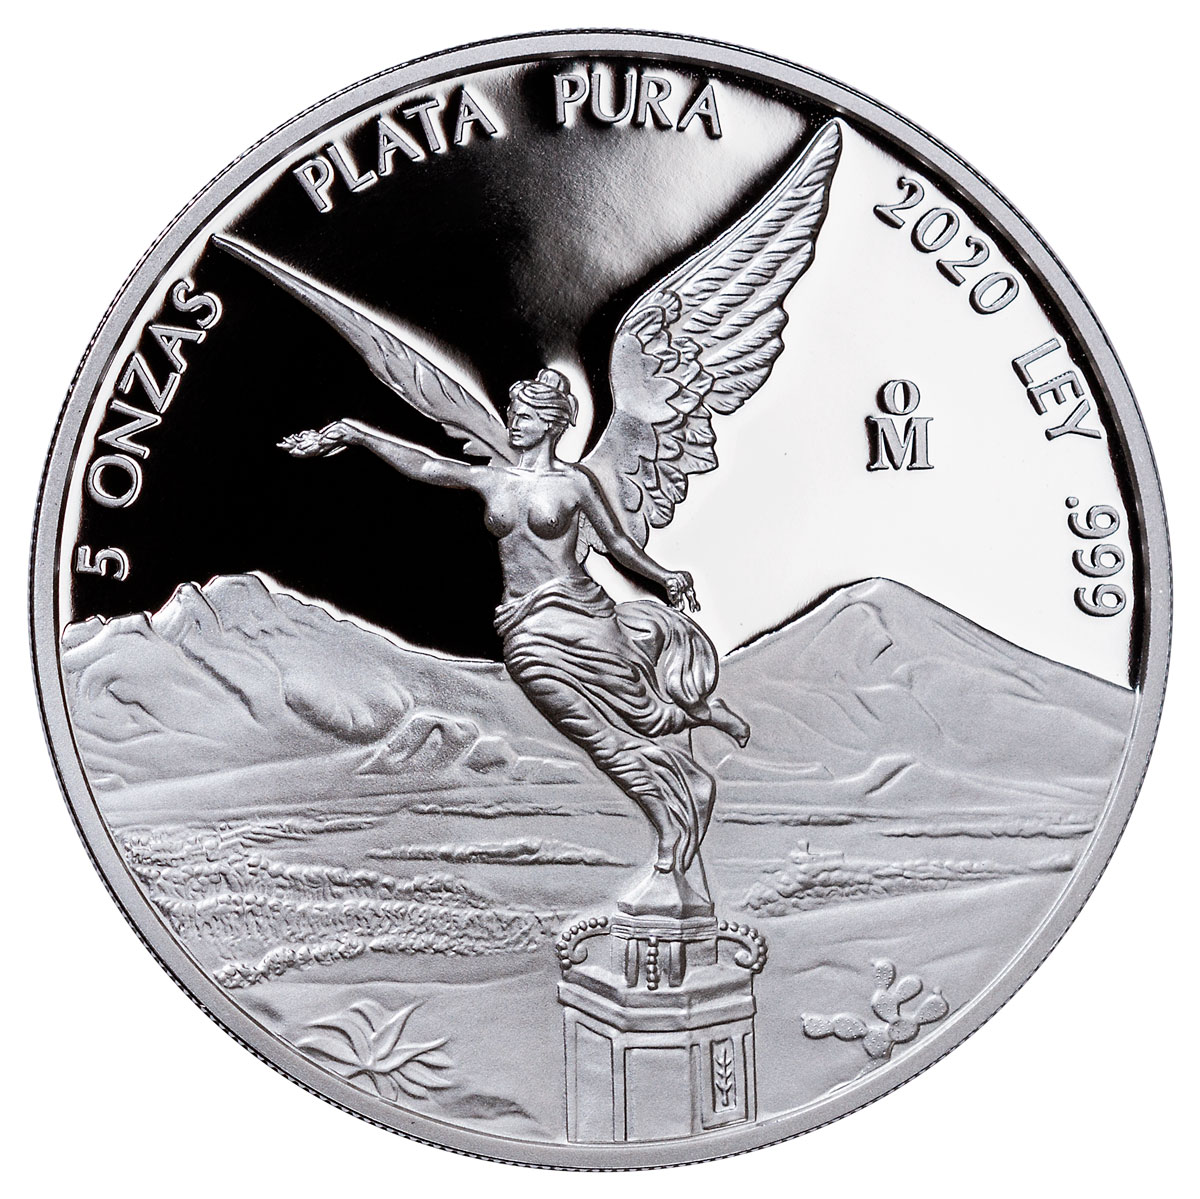 2020-Mo Mexico 5 oz Silver Libertad Proof 5 Coin GEM Proof